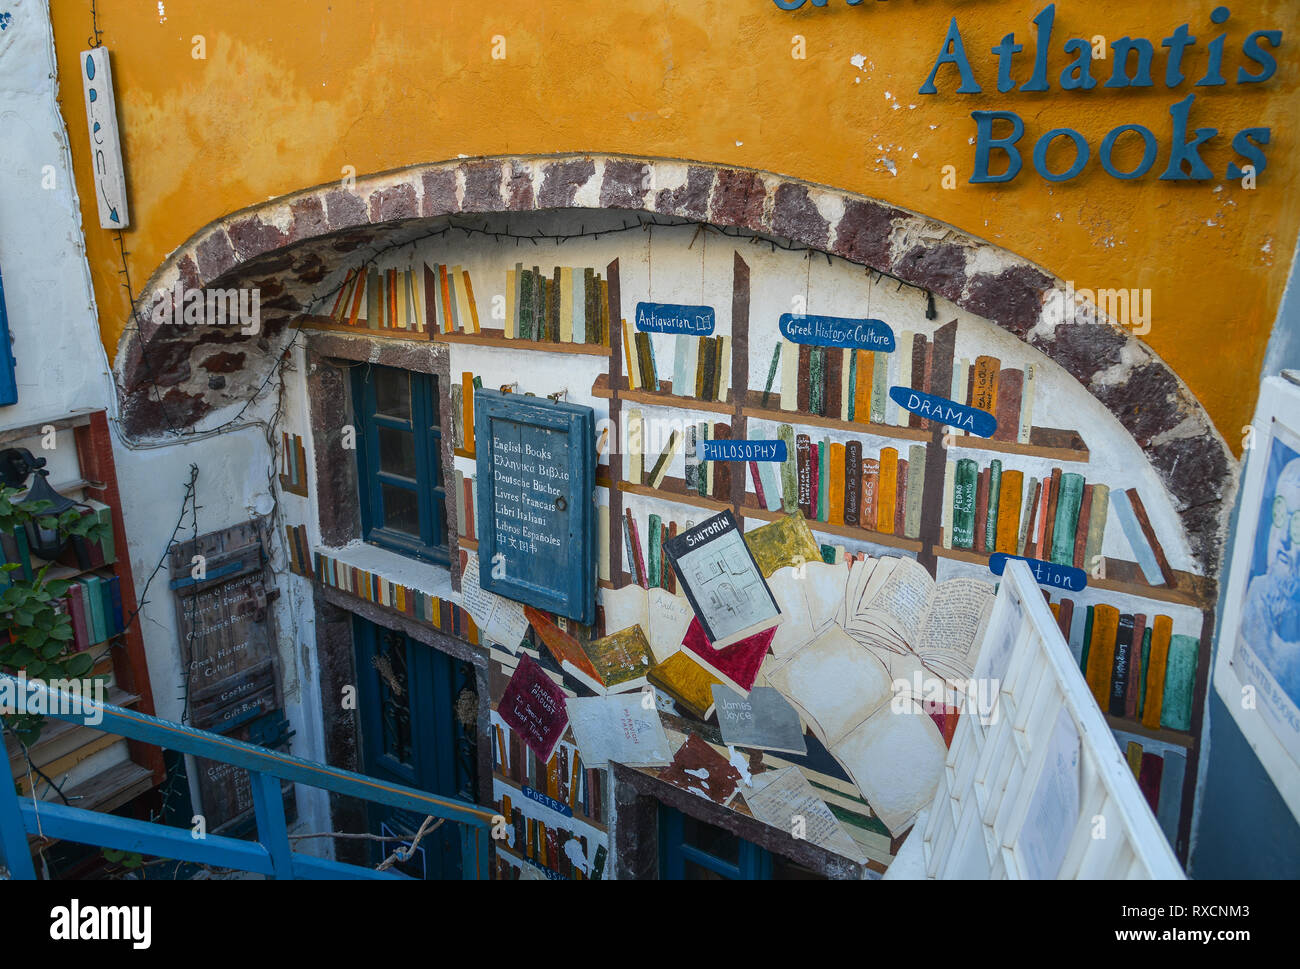 Santorini, Greece - Oct 4, 2018. View of Atlantis Bookshop on Santorini Island, Greece. Atlantis is one of my favorite bookstores anywhere. - Stock Image